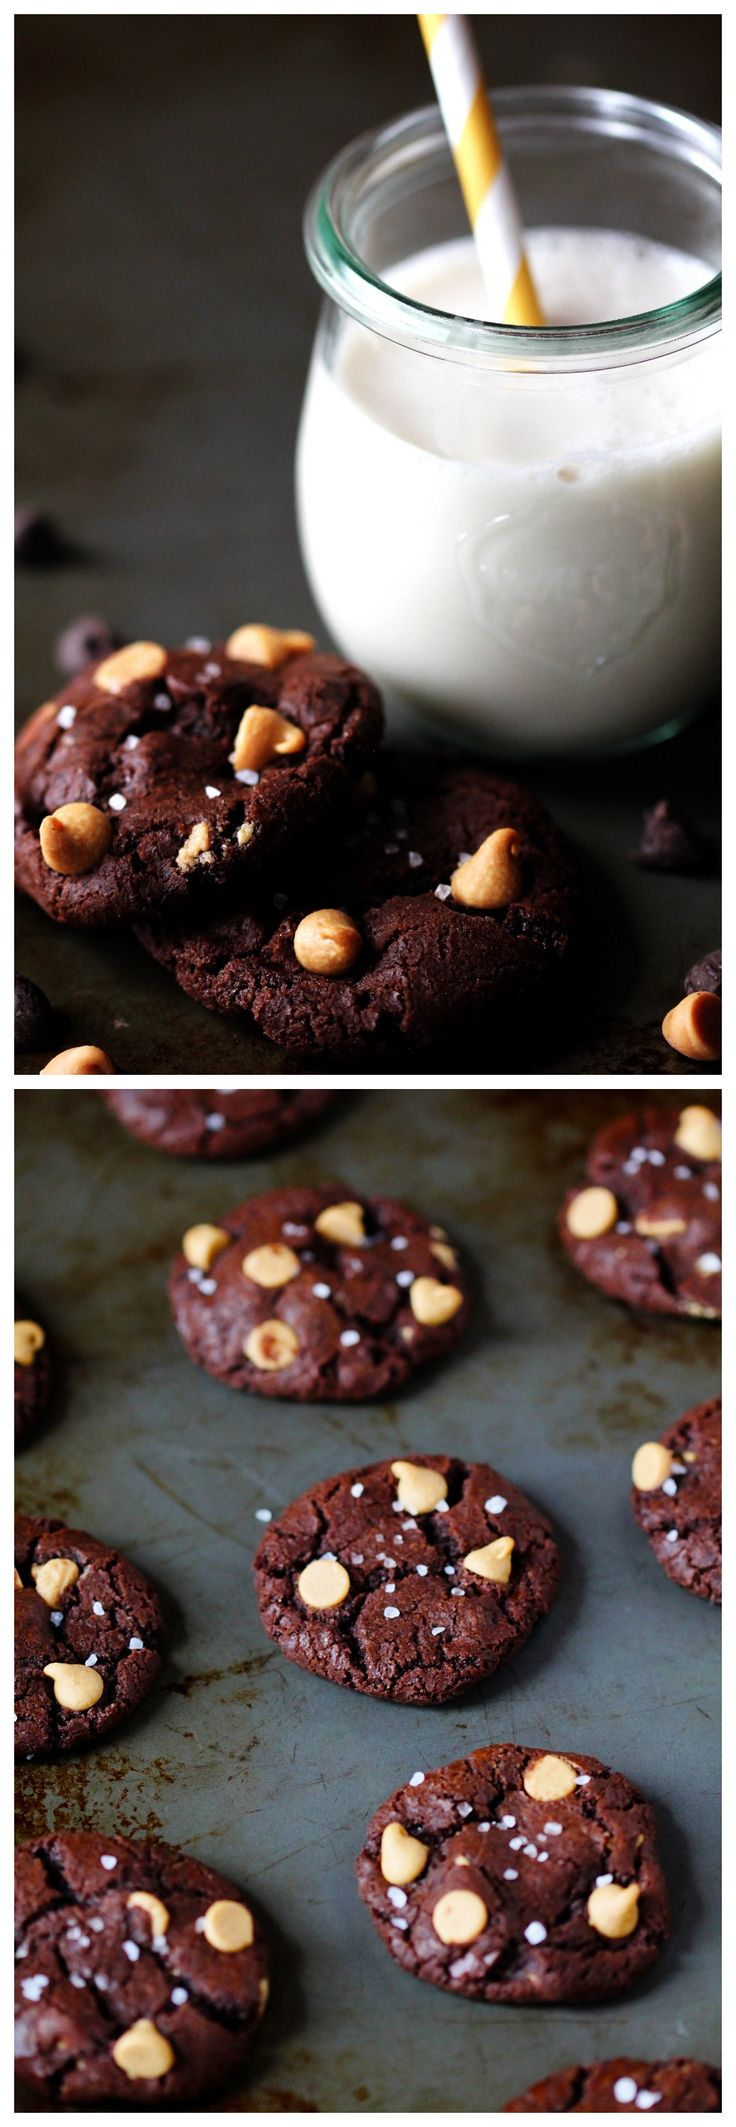 Salted Chocolate Peanut Butter Cookies -- just as wonderful as they sound | gimmesomeoven.com #cookies #dessert #chocolate